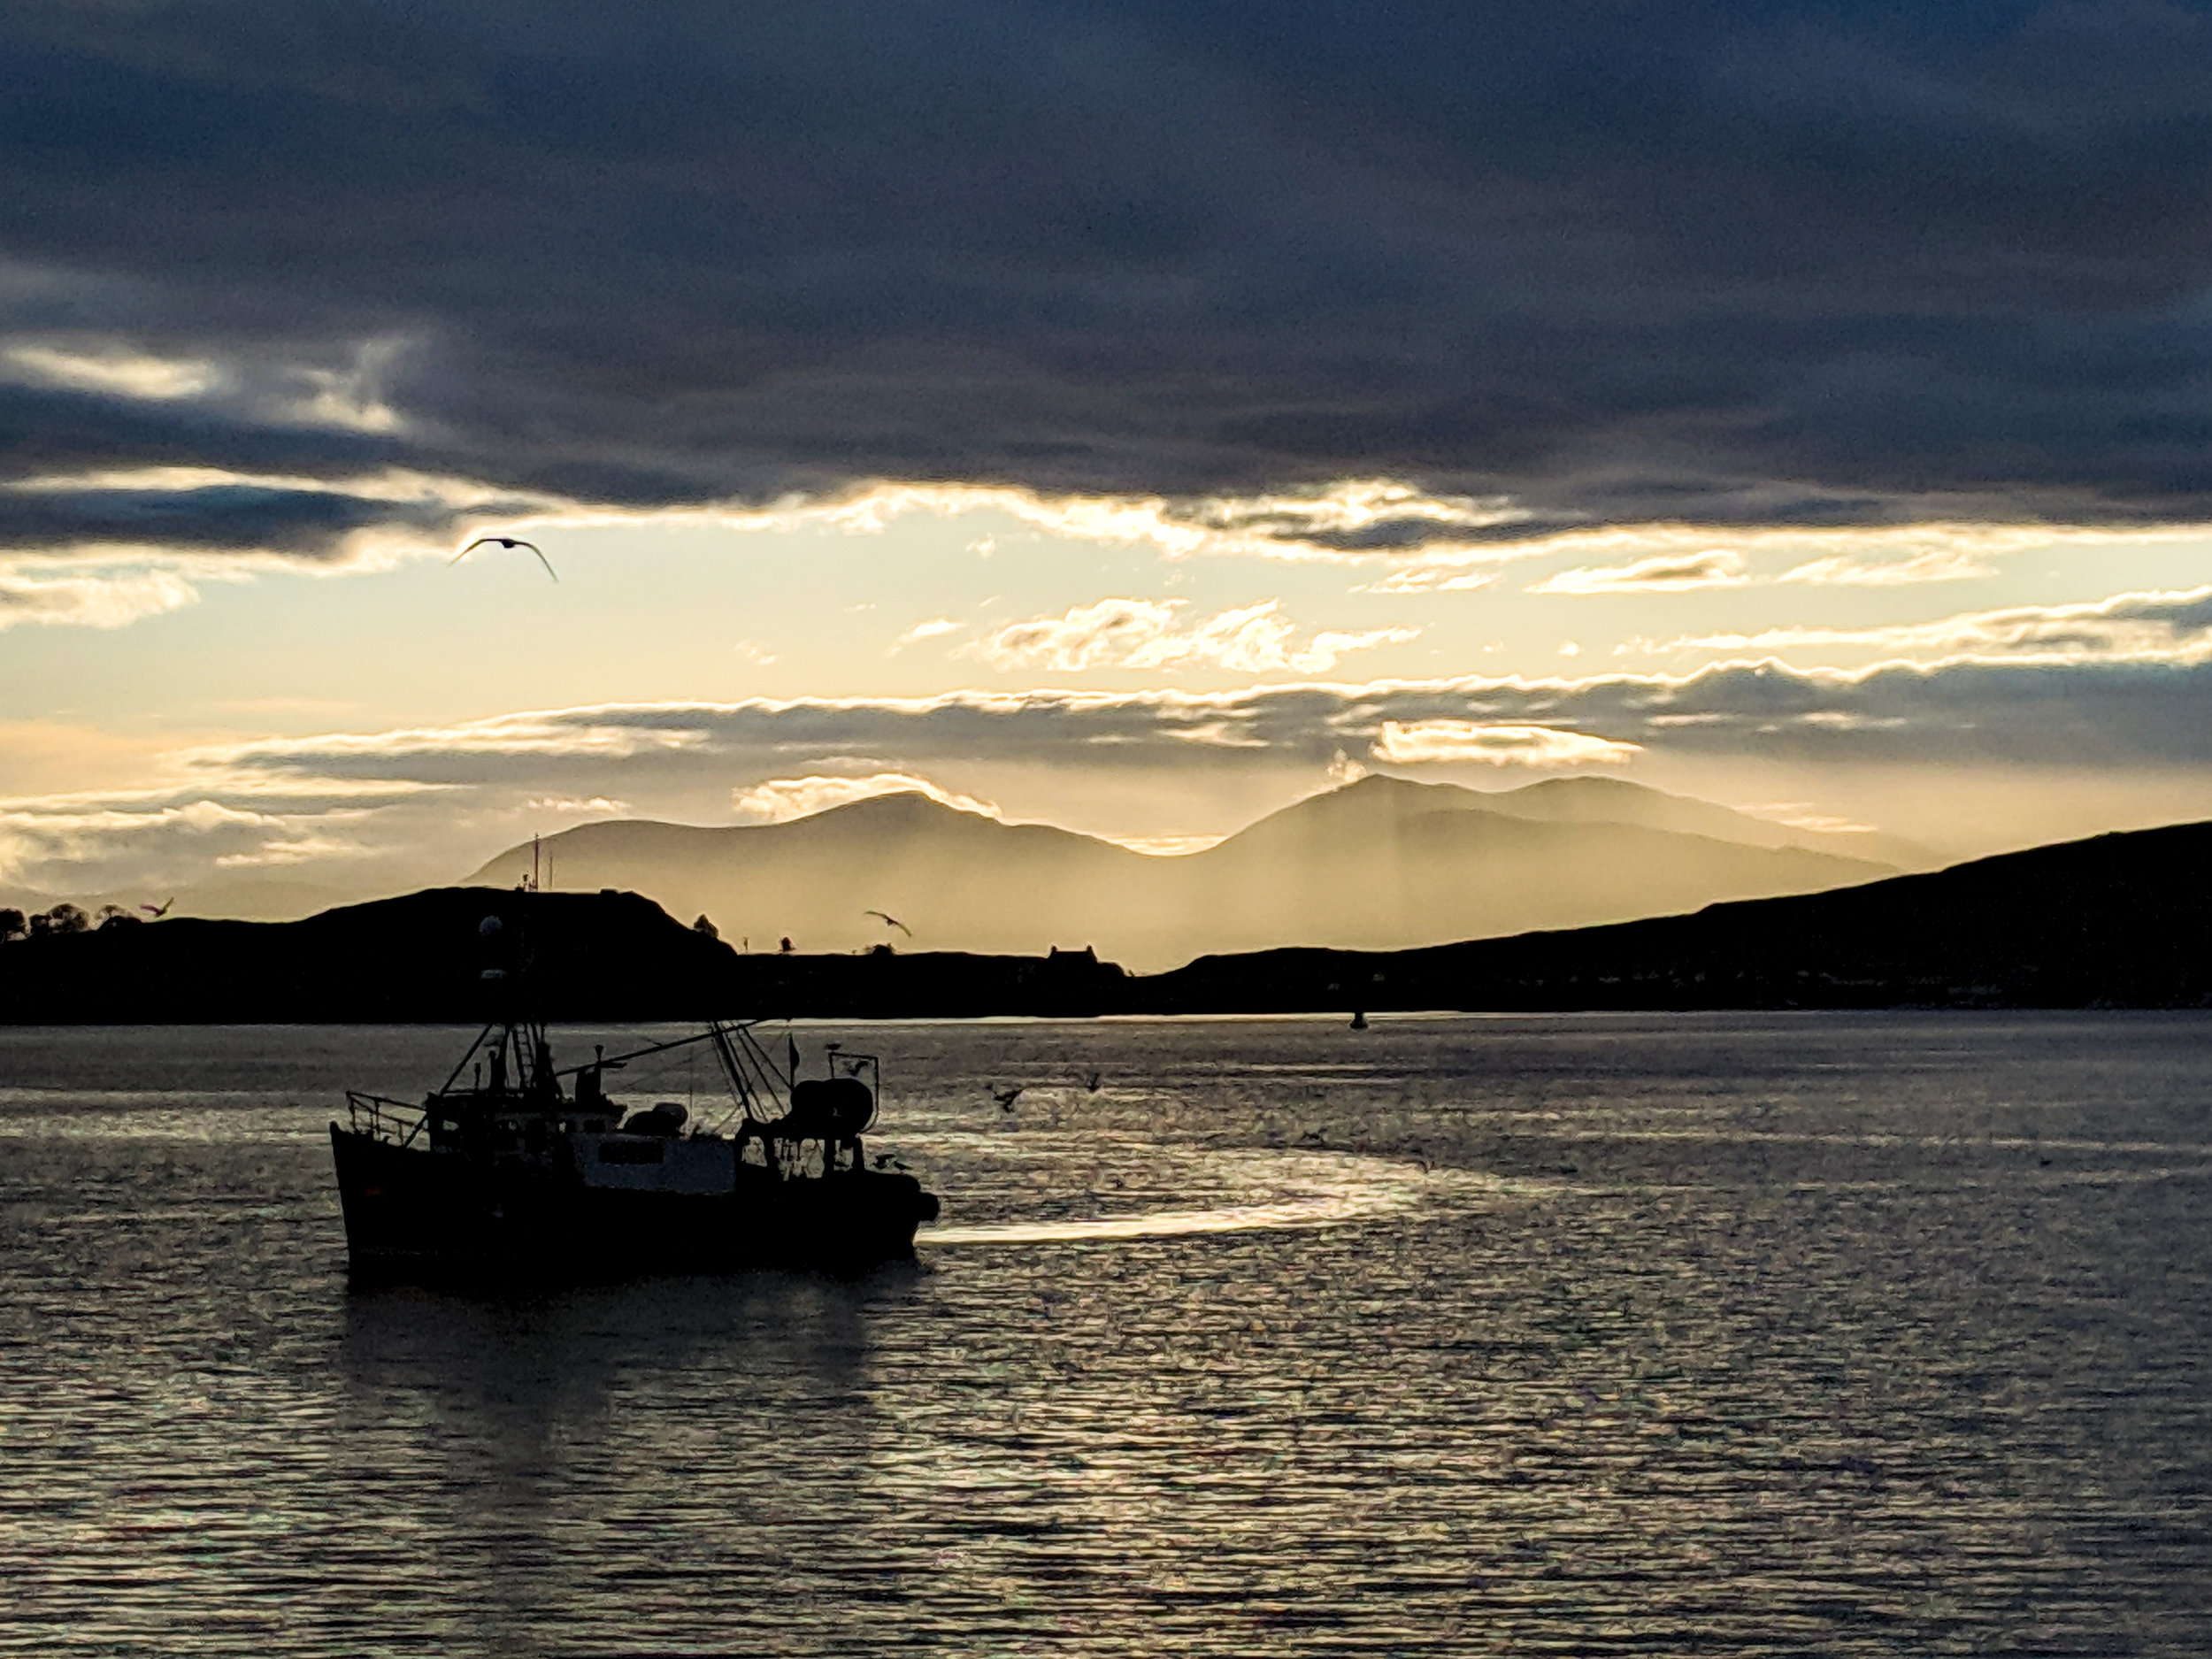 View from Oban, taken on a trip in Vandalf last Saturday.